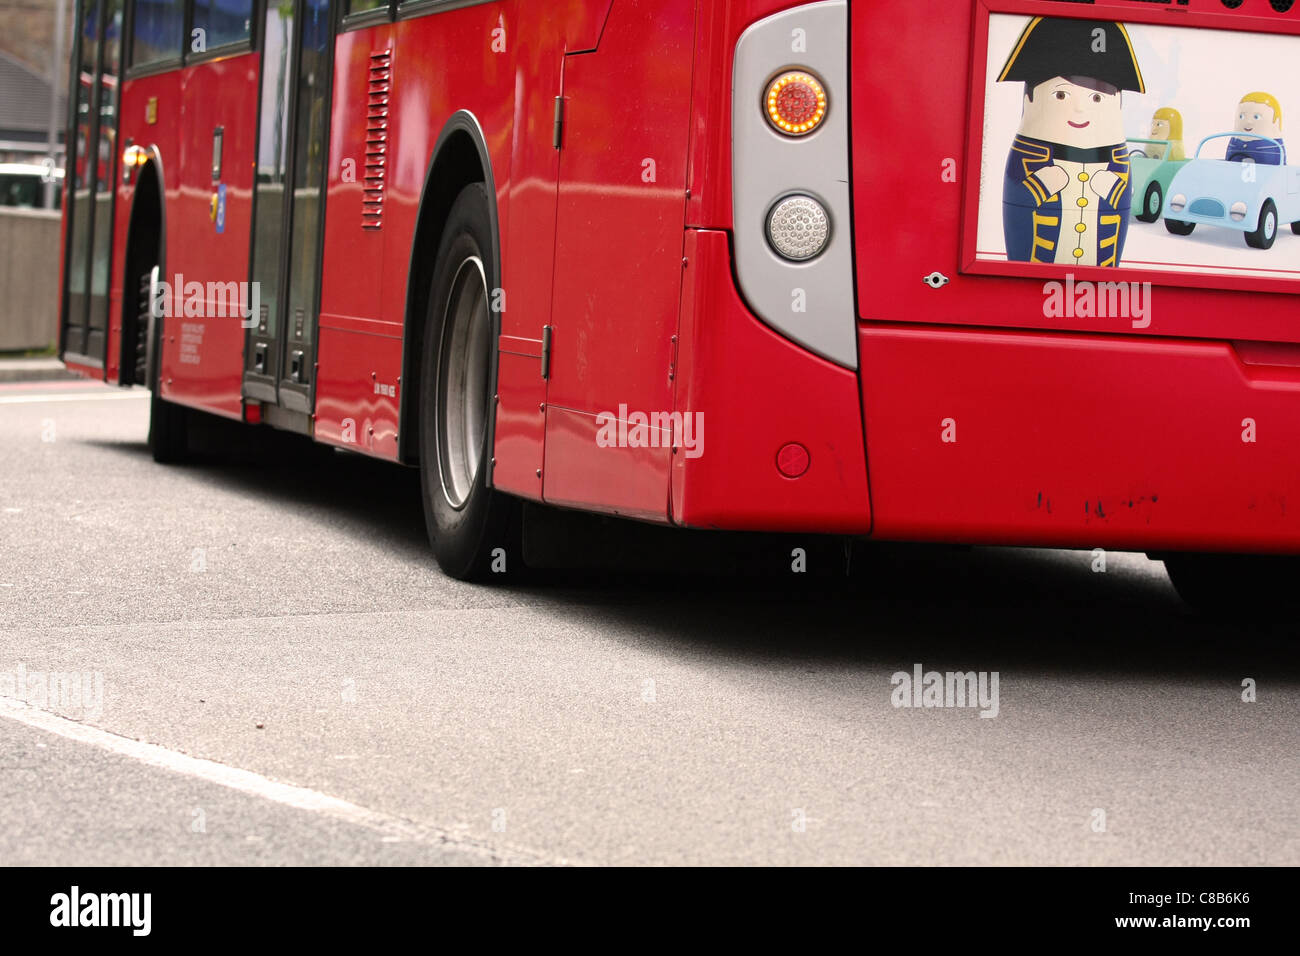 part of a double decker red London bus as it travels along a road - Stock Image